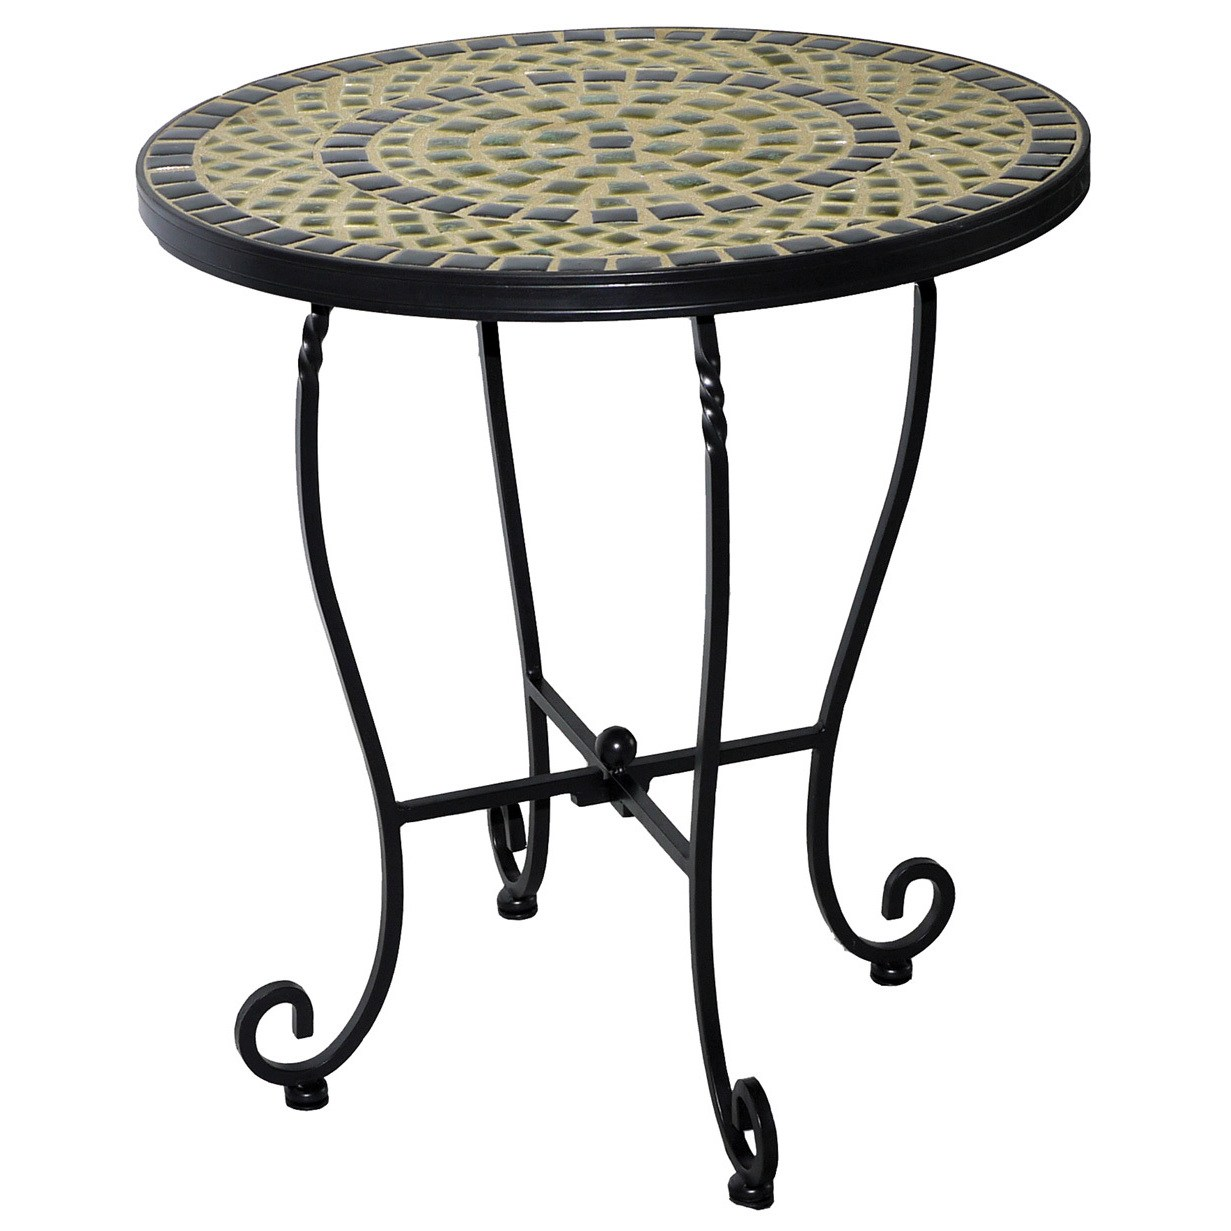 shannon inch round ceramic mosaic outdoor side table with tile top and base free shipping today vintage replica furniture whole lamp shades small accent tables for bedroom hampton